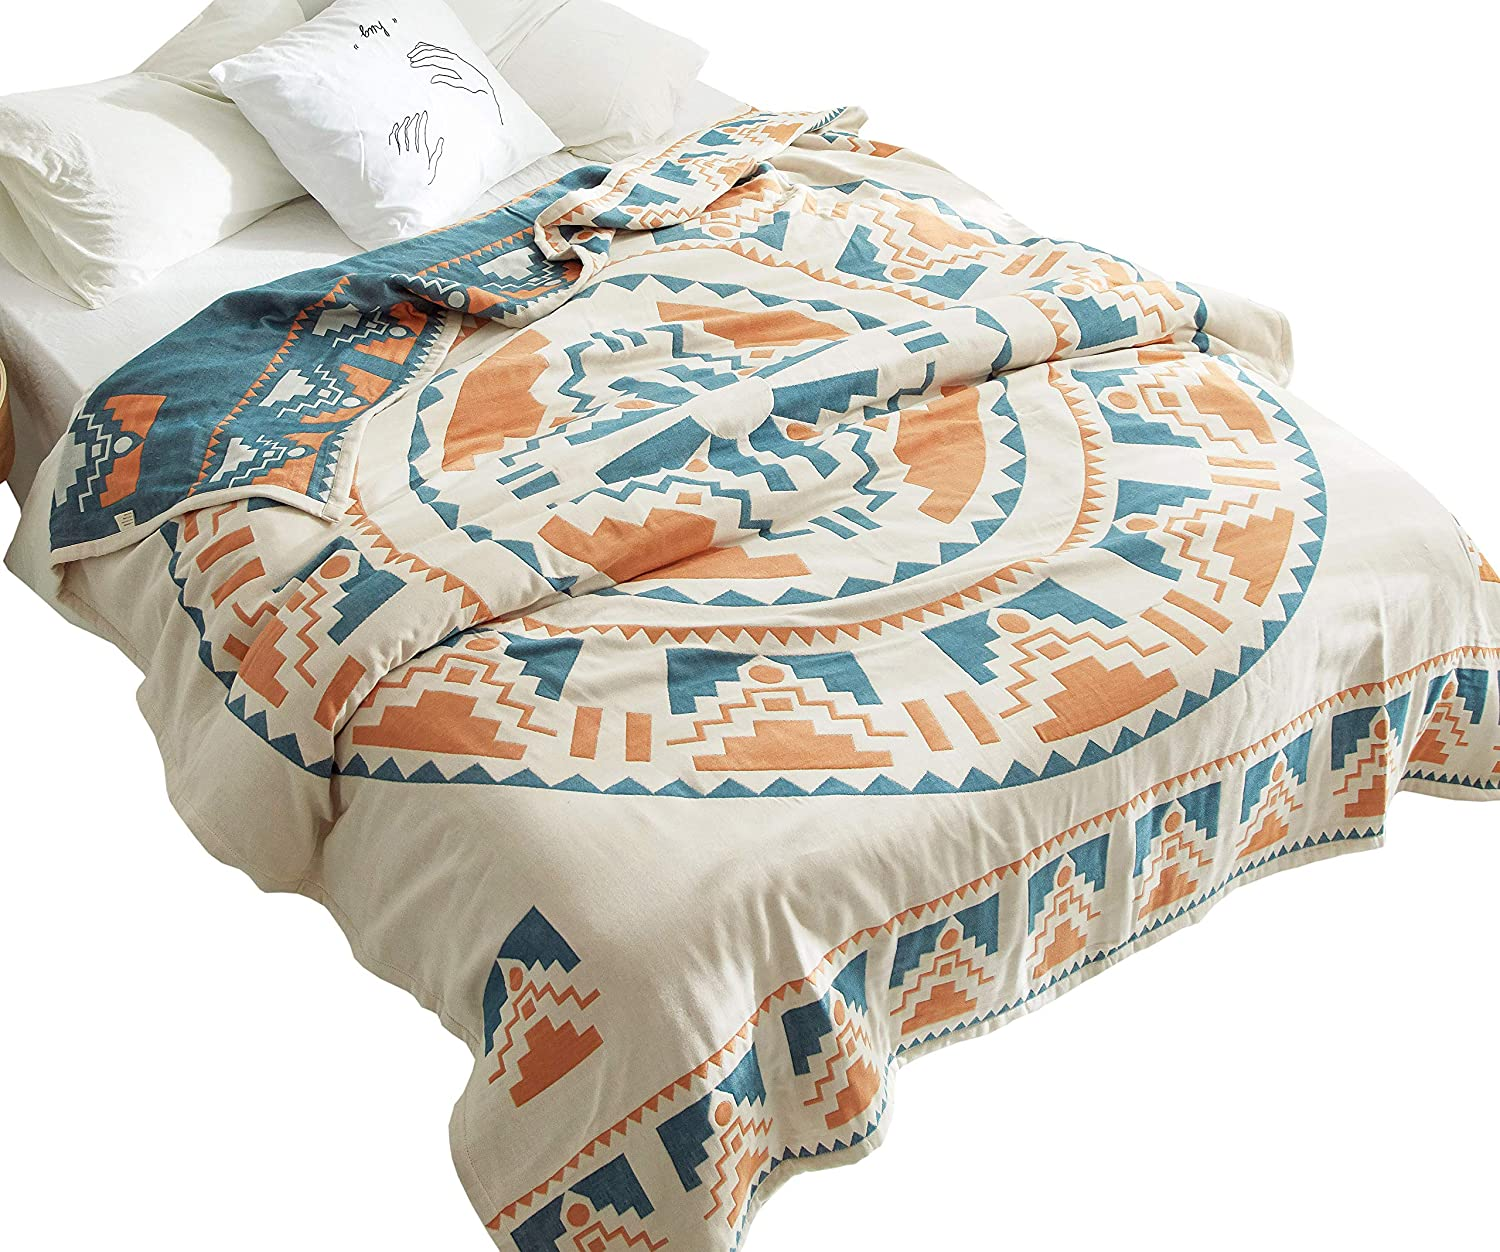 MEJU Sun God Boho Geometric Cozy Reversible Bed Blanket, Full/Queen 78